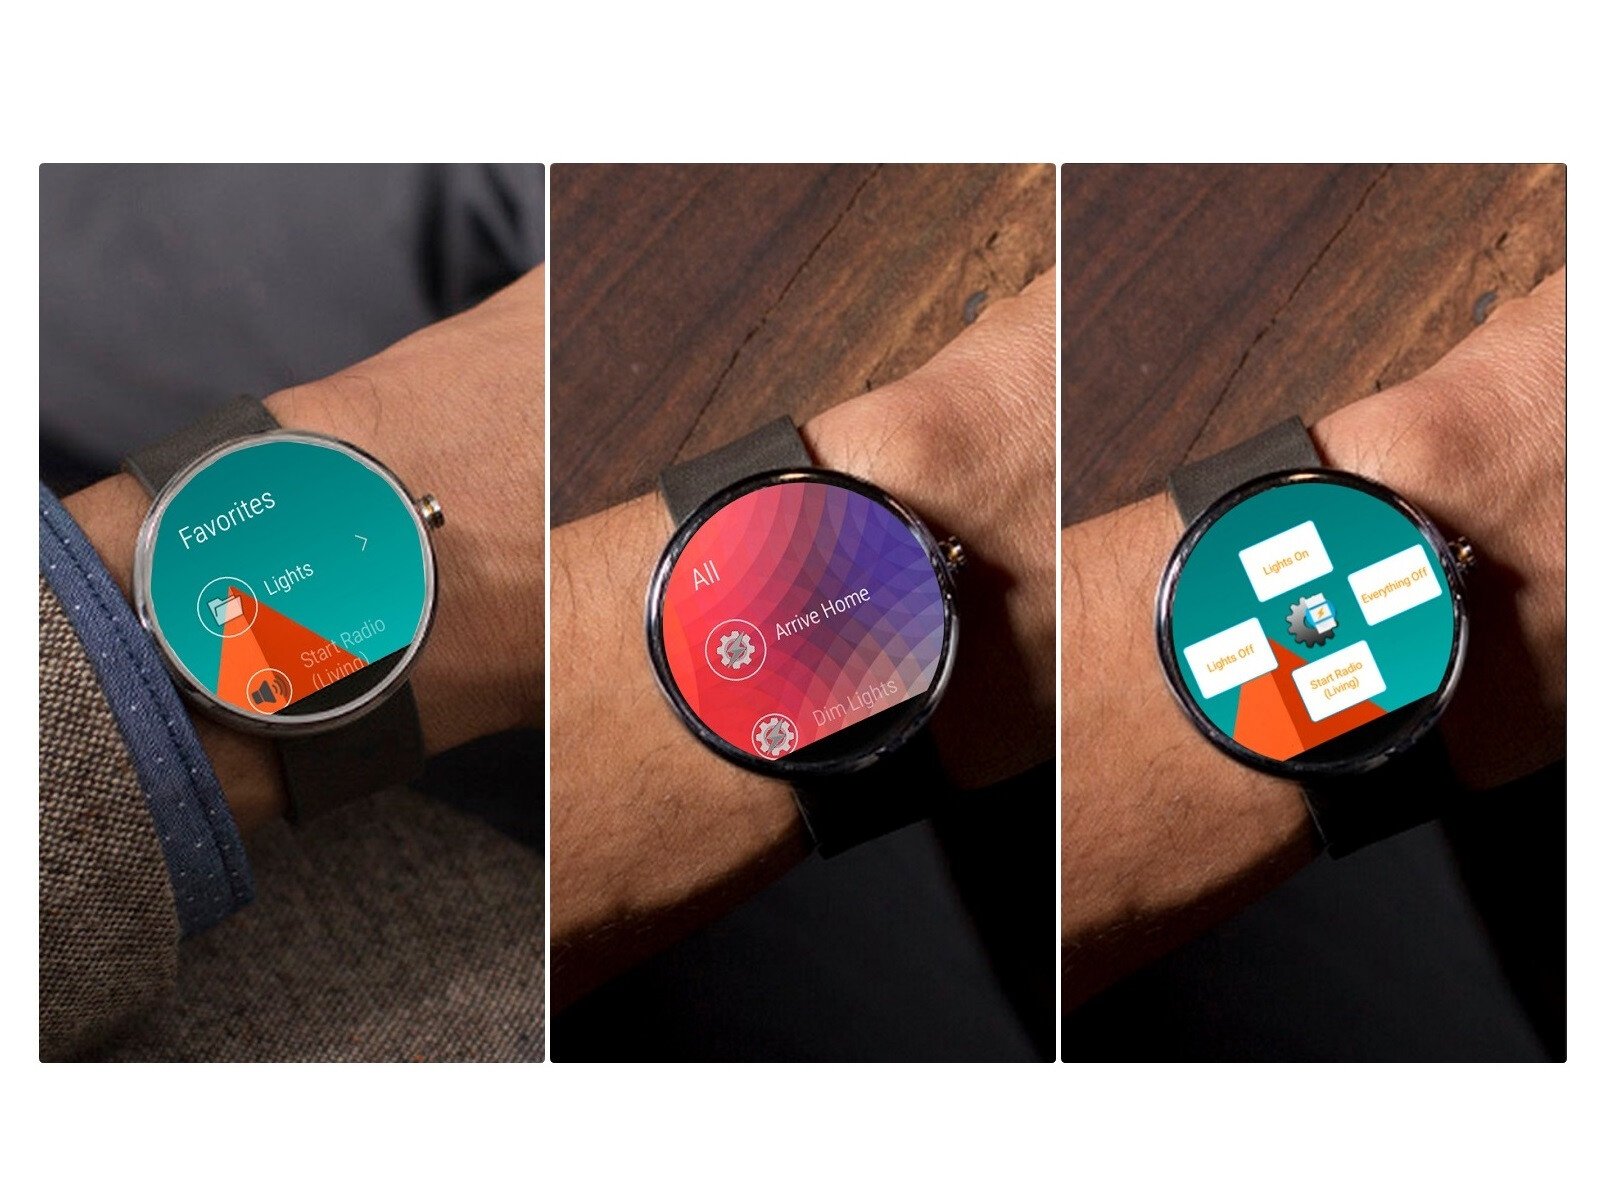 how to open app on phone using android wear